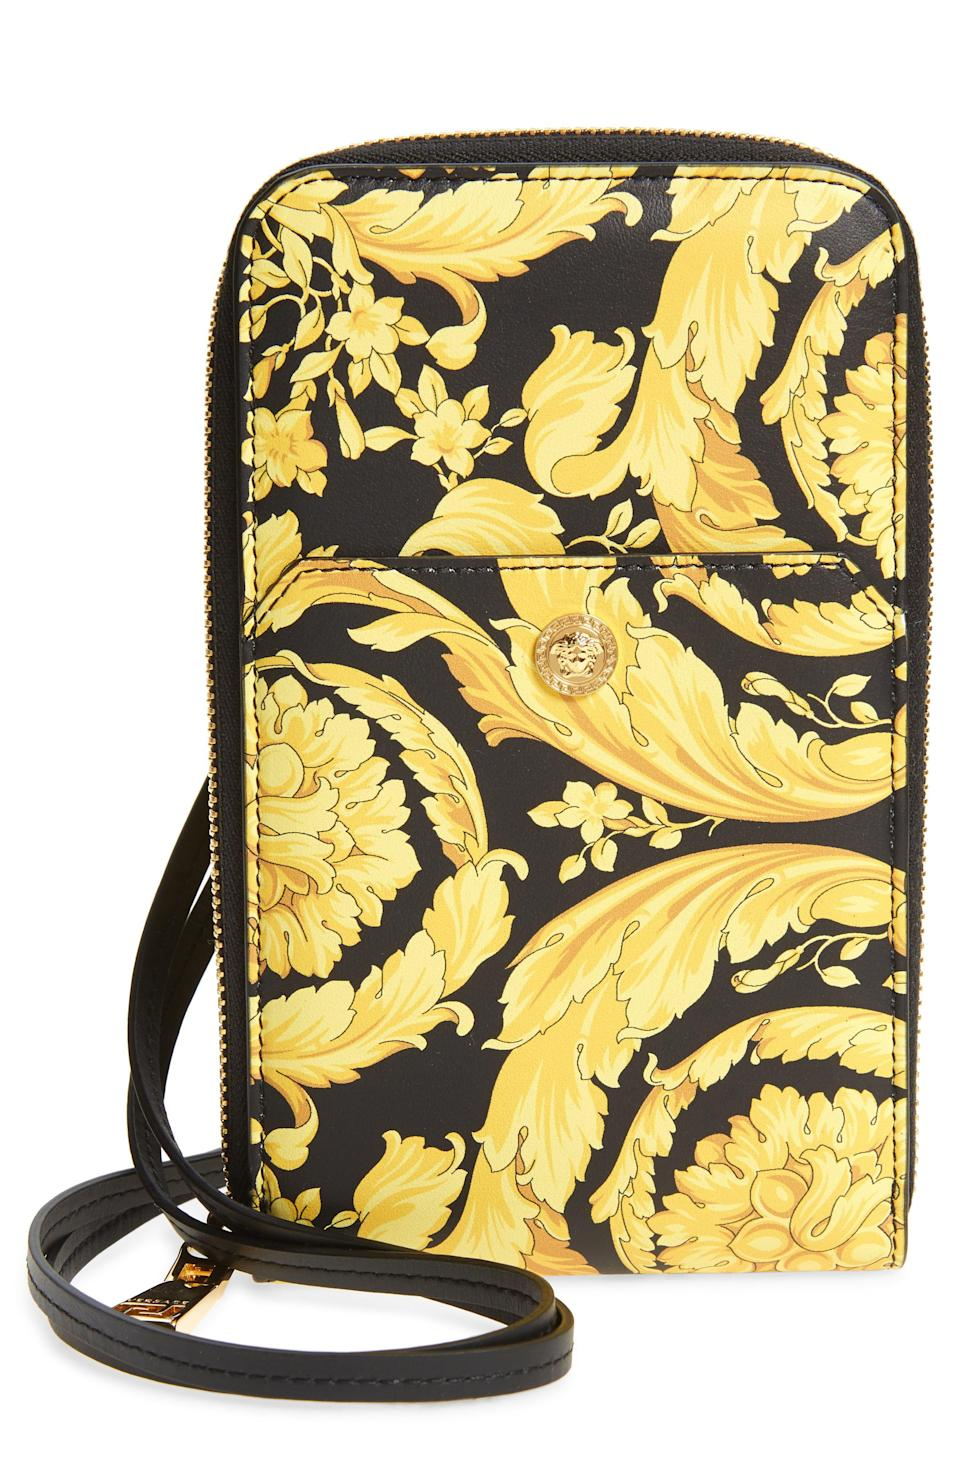 """<p><strong>Versace</strong></p><p>nordstrom.com</p><p><strong>$695.00</strong></p><p><a href=""""https://go.redirectingat.com?id=74968X1596630&url=https%3A%2F%2Fwww.nordstrom.com%2Fs%2Fversace-barocco-zip-around-leather-wallet%2F5675671&sref=https%3A%2F%2Fwww.esquire.com%2Fstyle%2Fmens-accessories%2Fg35924710%2Fmens-luxury-wallets%2F"""" rel=""""nofollow noopener"""" target=""""_blank"""" data-ylk=""""slk:Shop Now"""" class=""""link rapid-noclick-resp"""">Shop Now</a></p><p>If you're gonna go for it, you might as well <em>go for it</em>. </p>"""